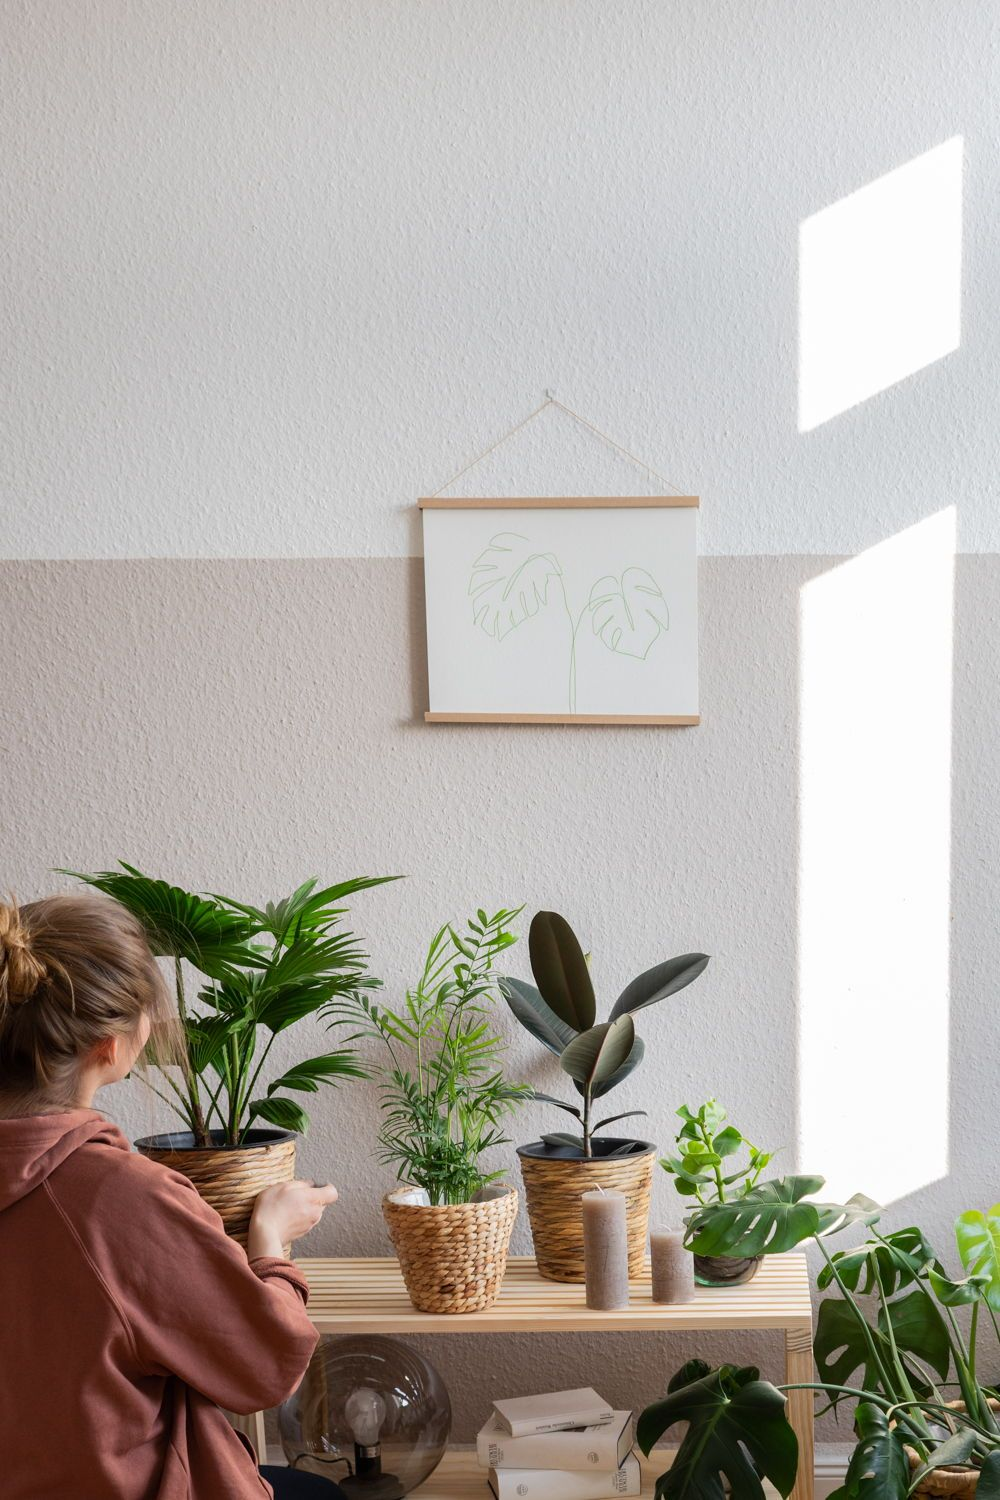 DIY Deko Idee Urban Jungle Feeling im Schlafzimmer Deko